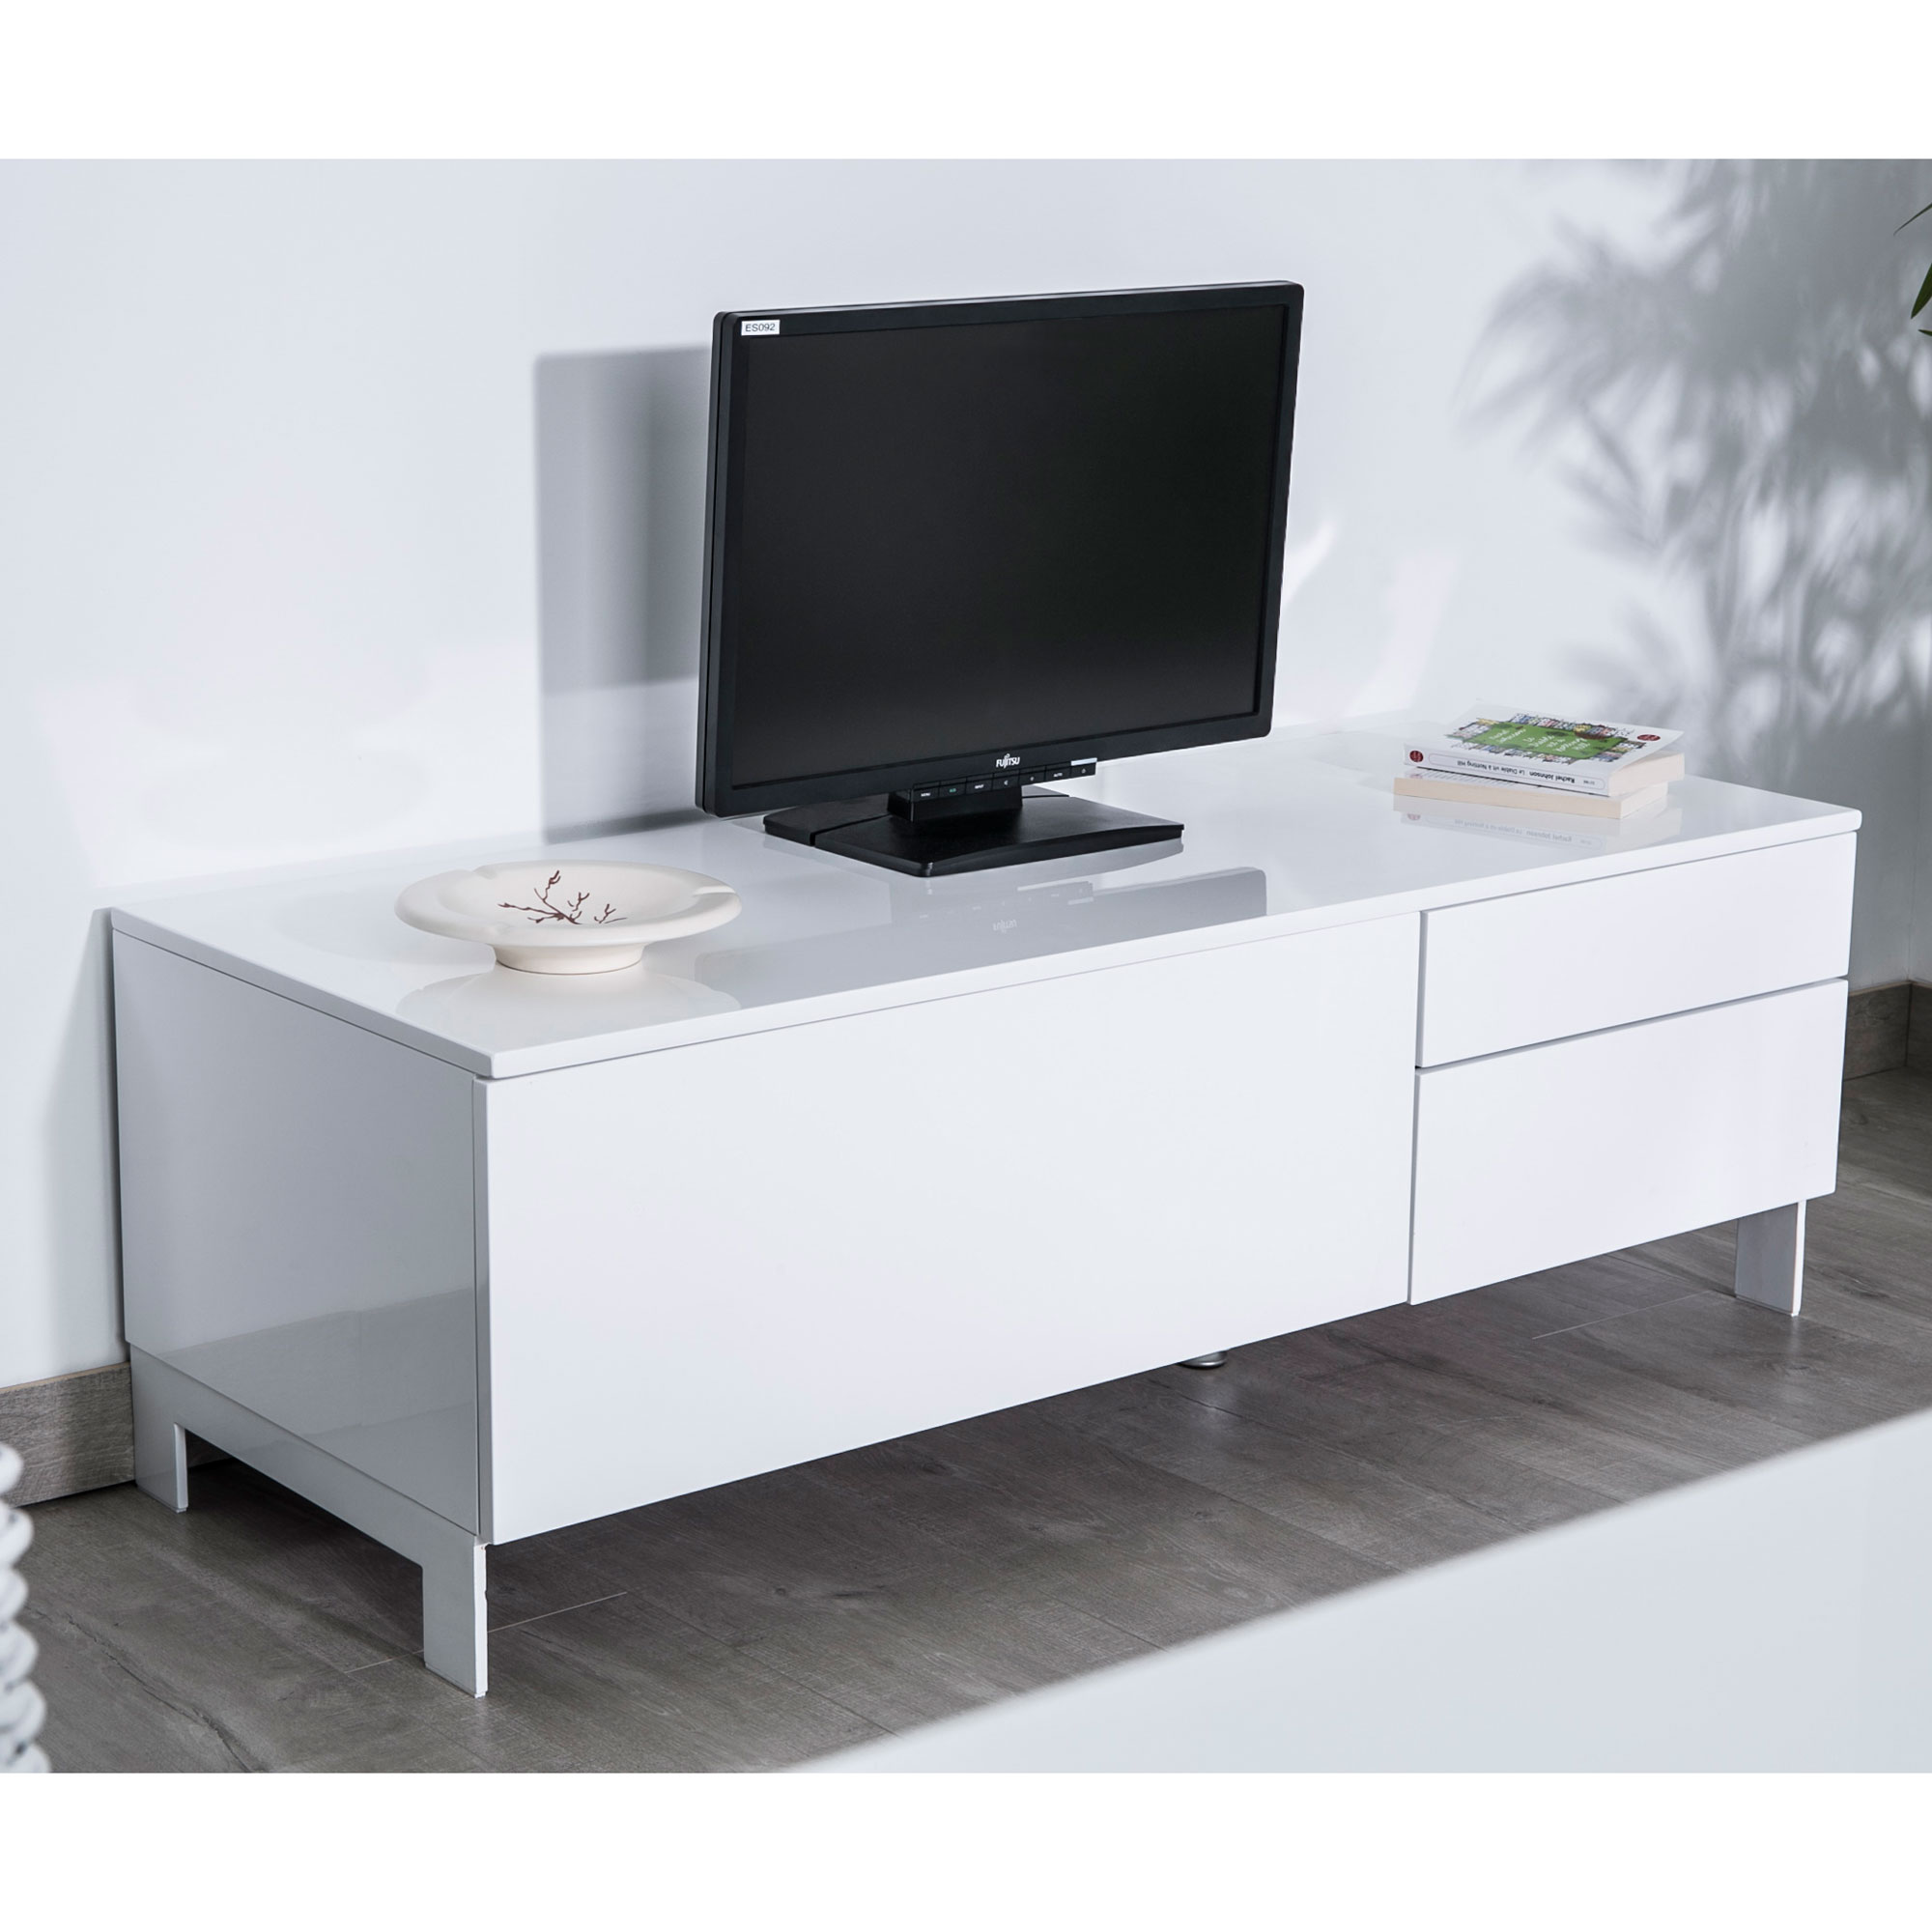 Meuble Tv Avec Porte Id Es De D Coration Int Rieure French Decor # Meuble Tv Porte Vitree